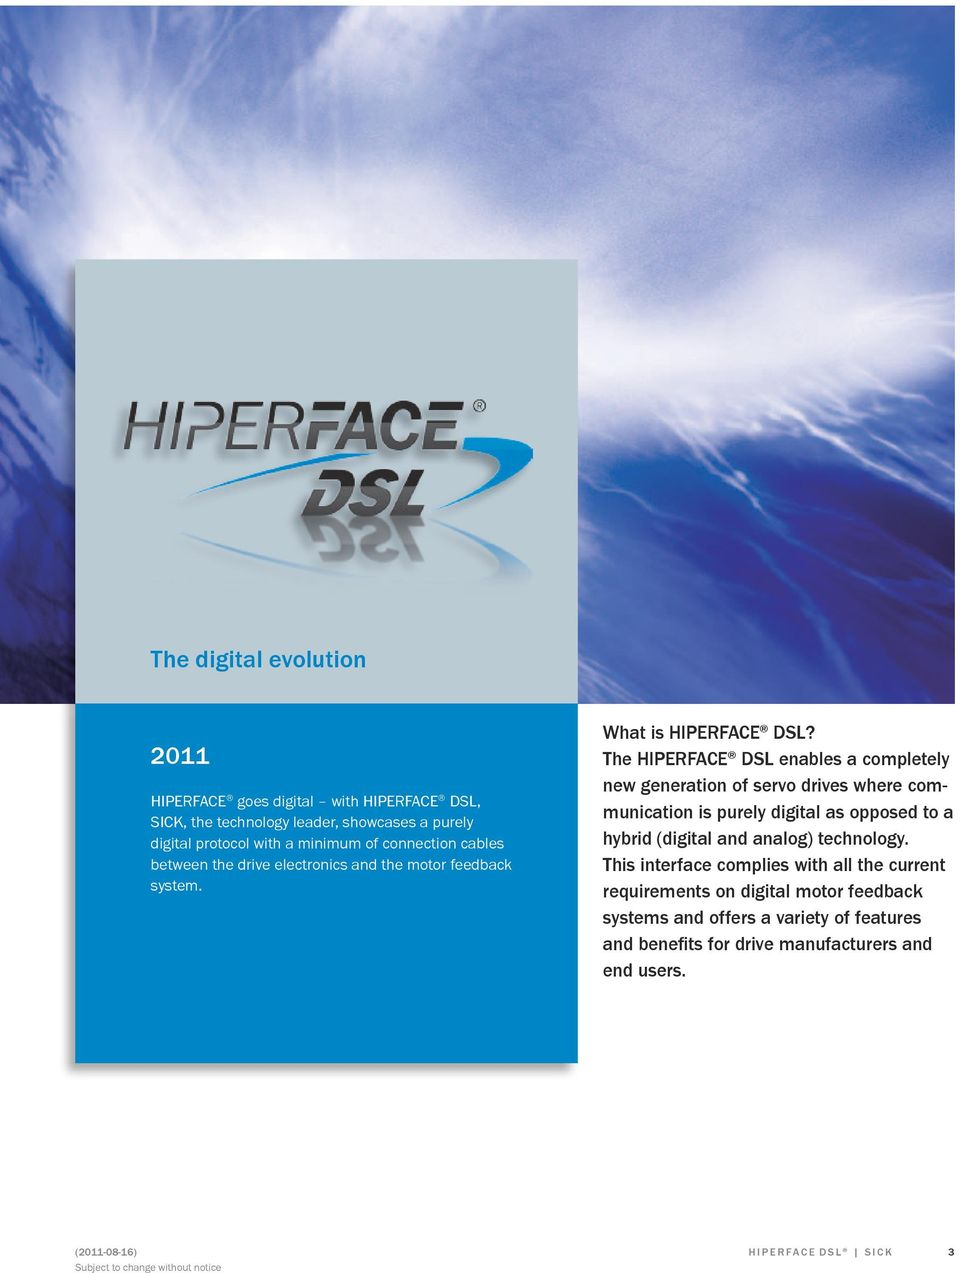 The HIPERFACE DSL enables a completely new generation of servo drives where communication is purely digital as opposed to a hybrid (digital and analog)